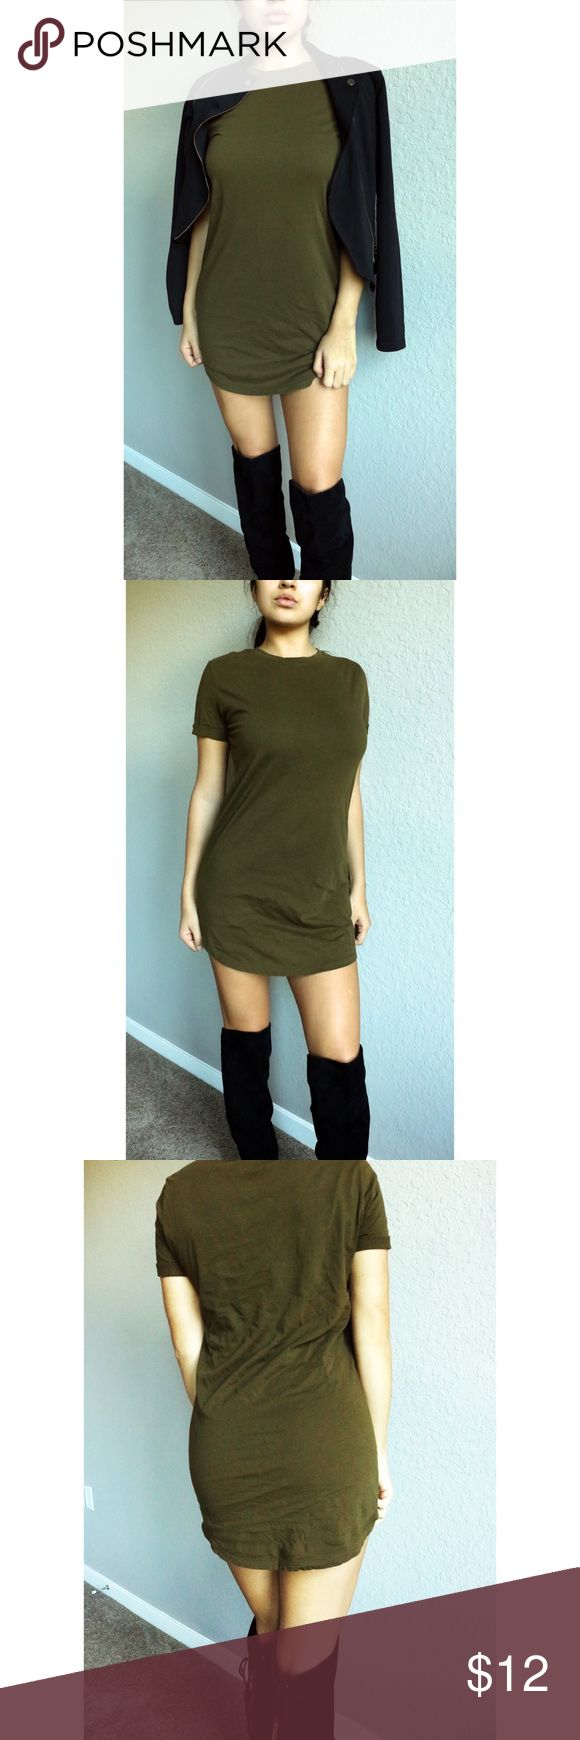 Forever21 Olive Green T-Shirt Dress Condition: gently worn, like new  *will fit a number of small sizes, hugs the curves! Little wrinkled just needs some ironing :) Forever 21 Dresses Midi